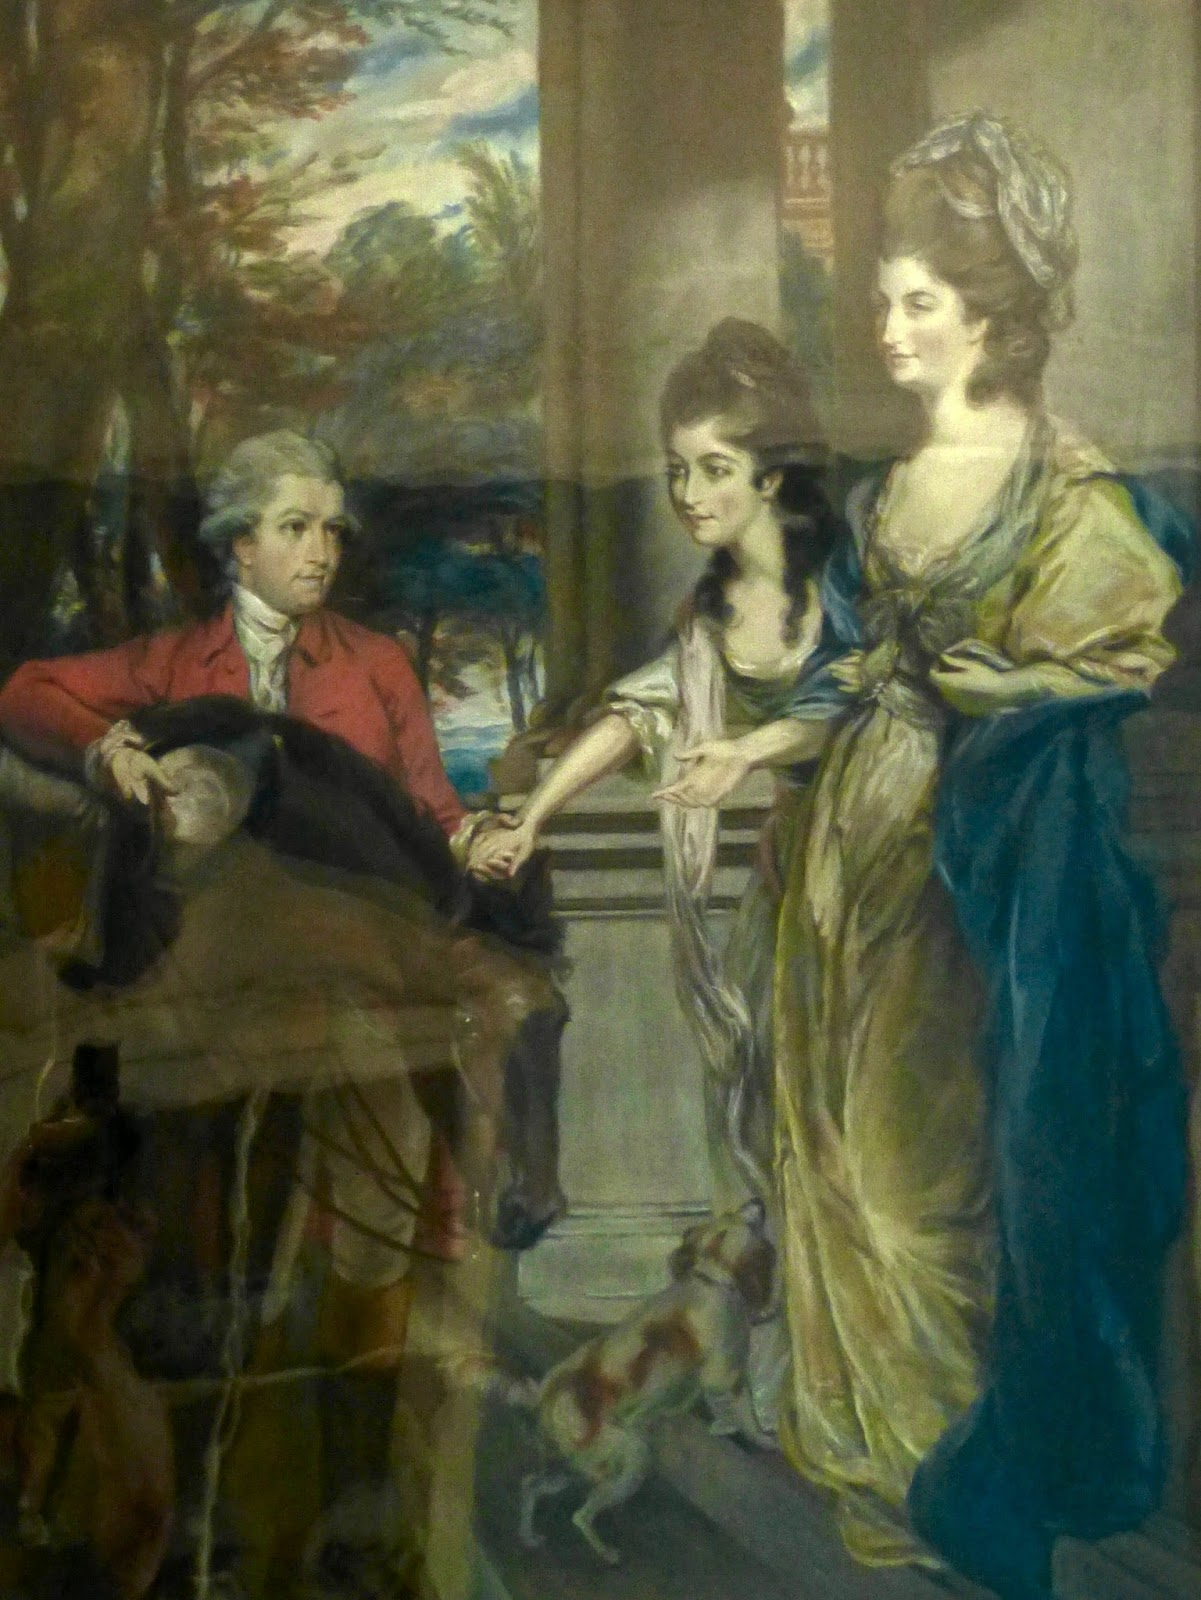 Robert and Sarah Child and their daughter Sarah   Anne by Margaret Battine after Daniel Gardner  Portrait originally created in 1781